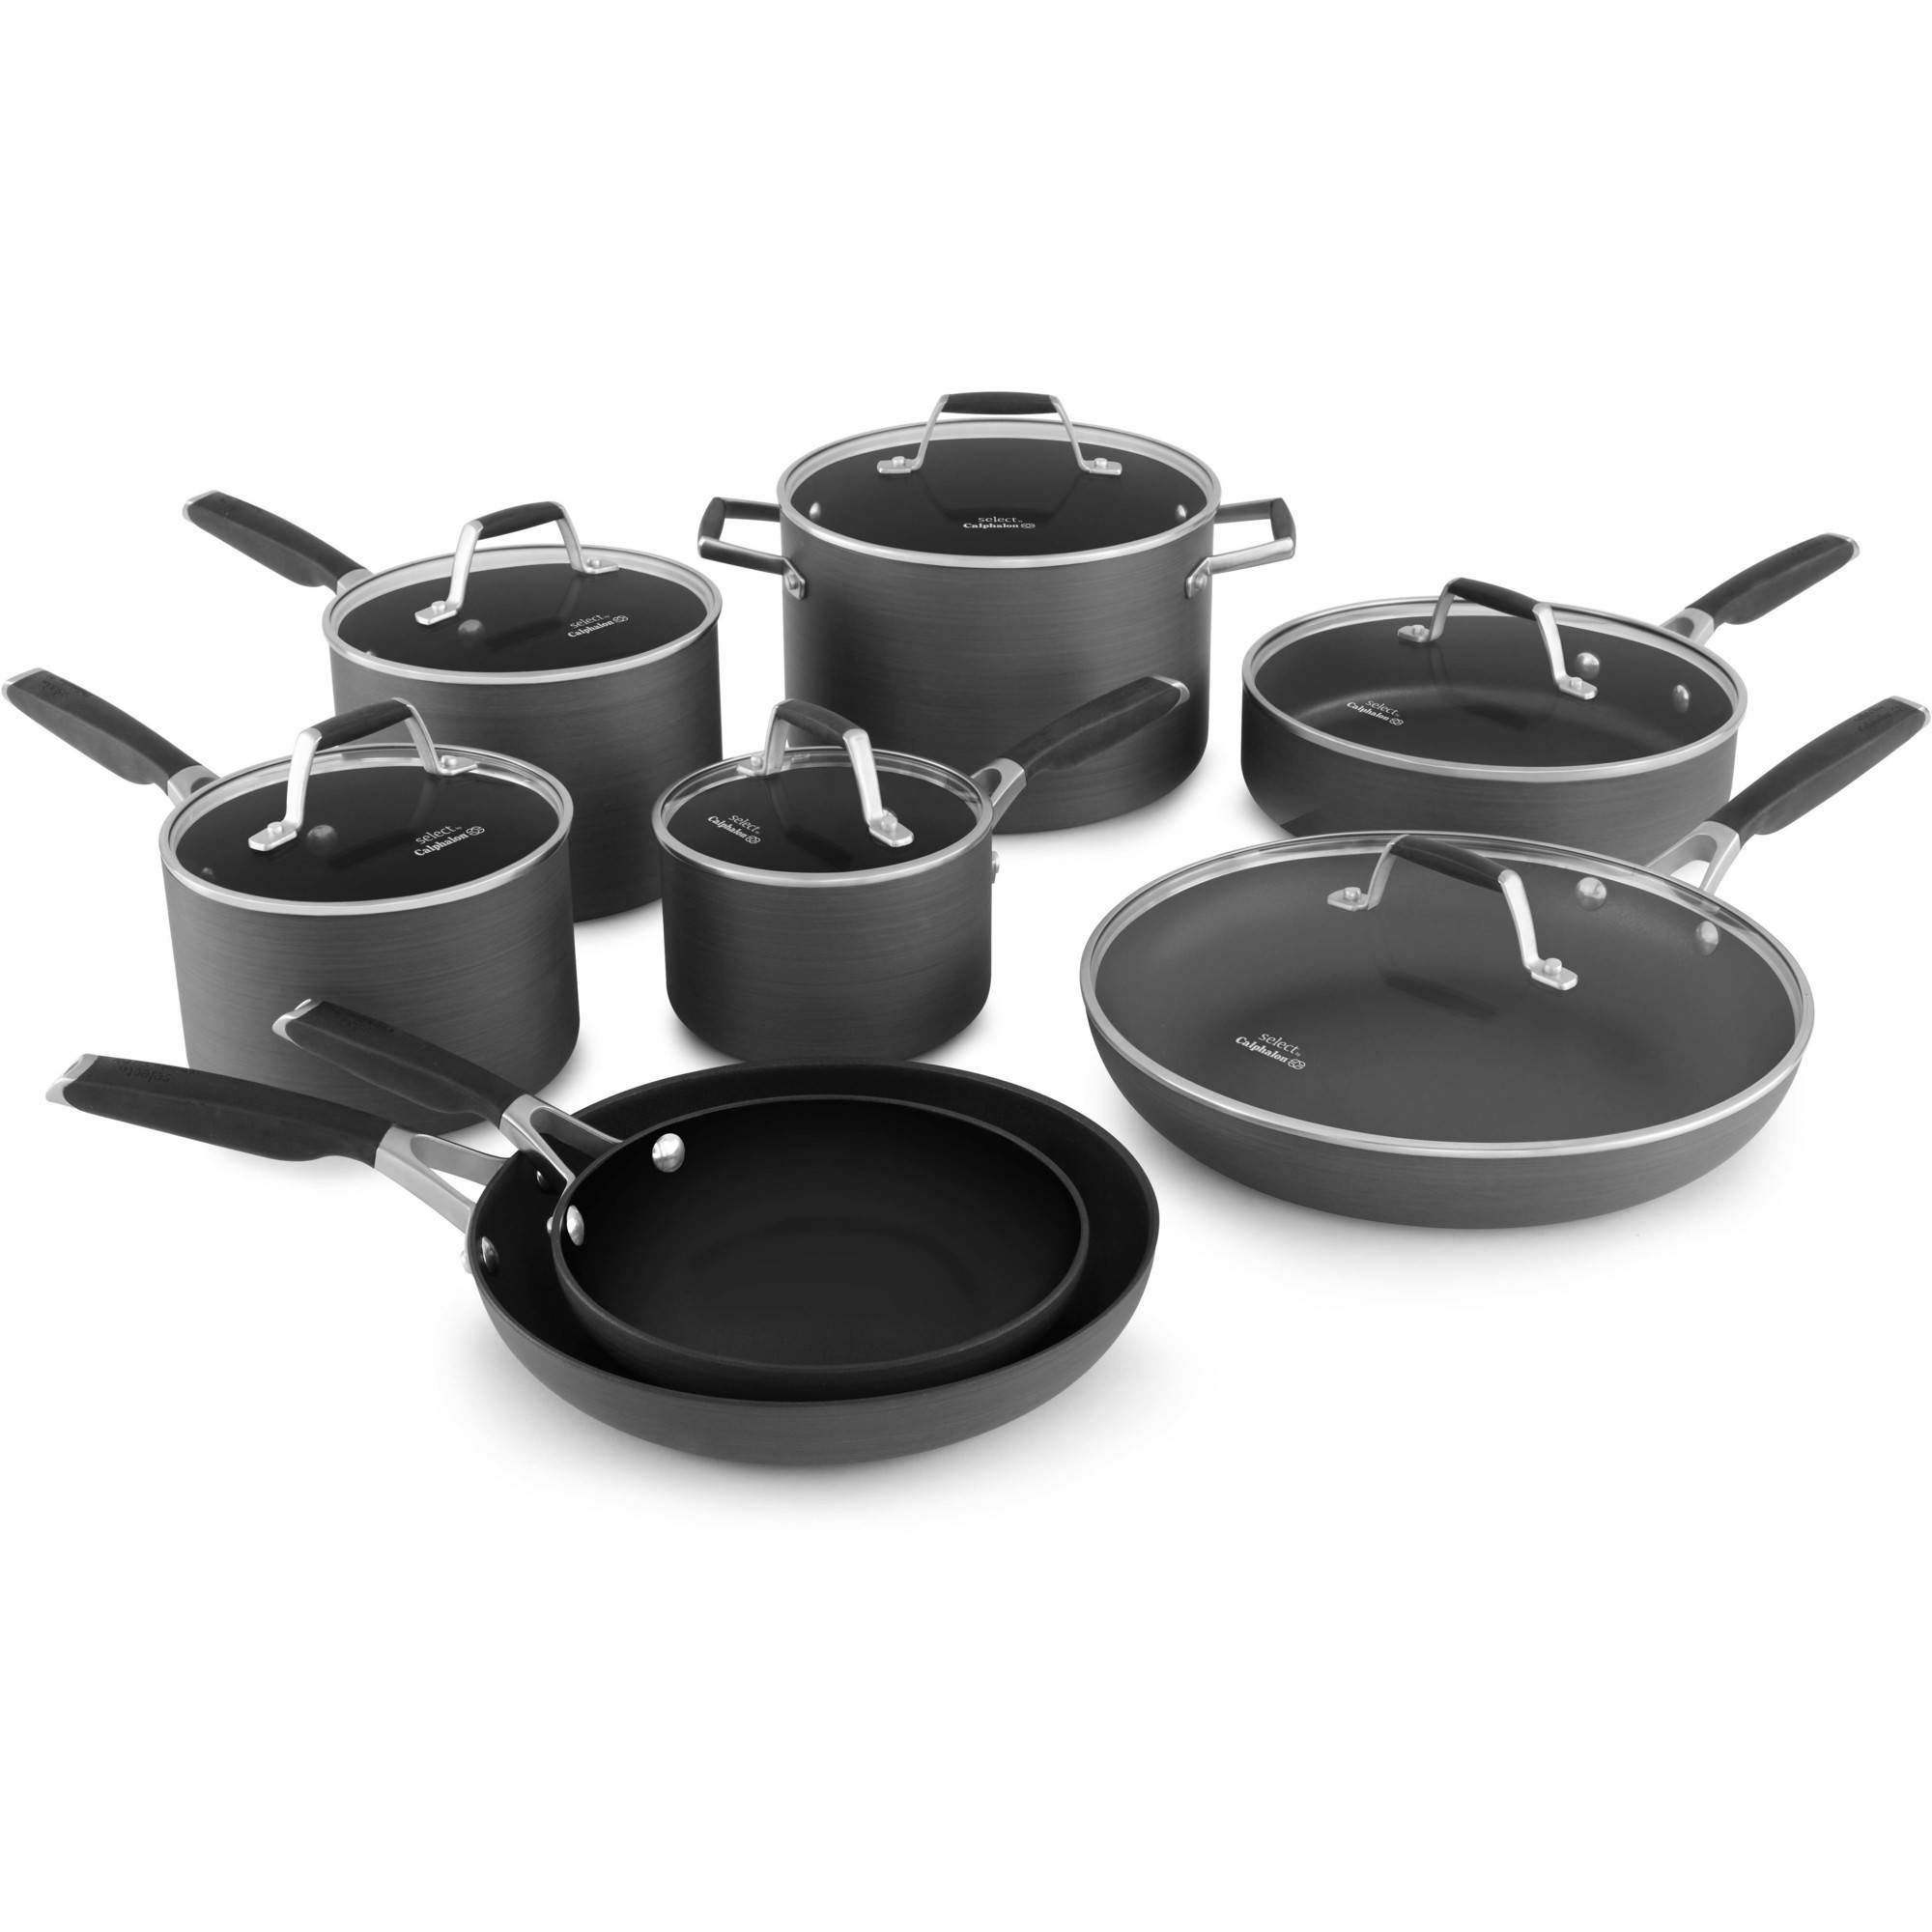 Select by Calphalon Hard-Anodized Nonstick 14-piece Cookware Set